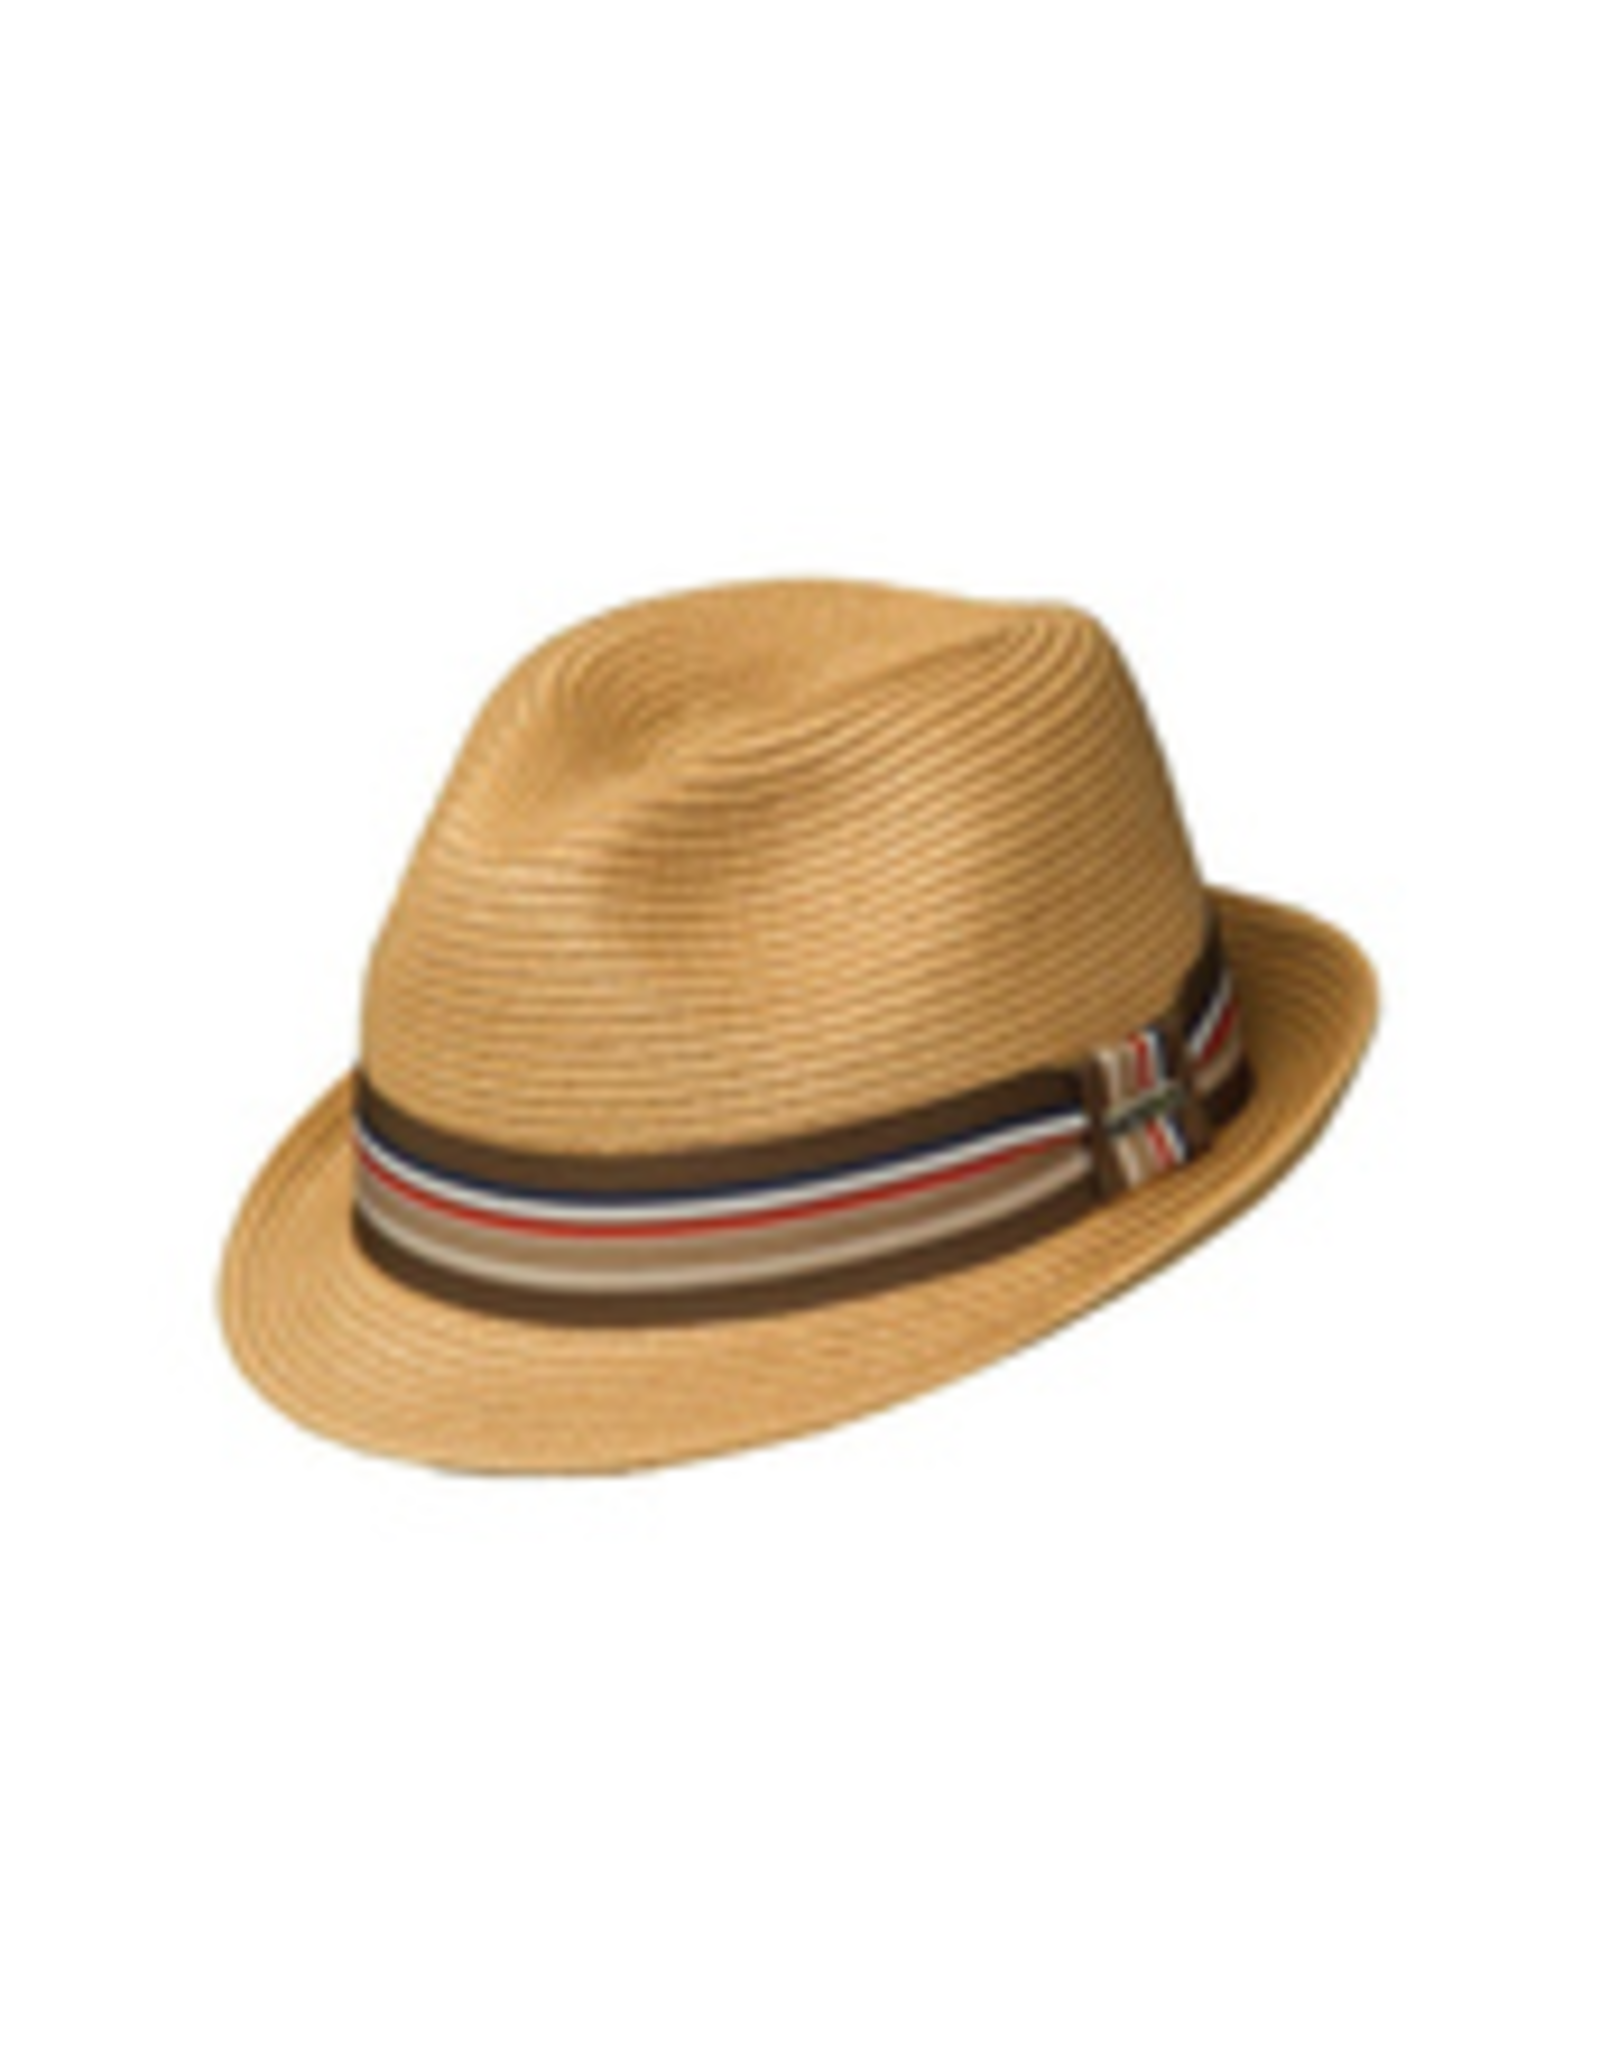 HAT-FEDORA-CINCINNATI, PAPER BRAID, STIPE RIBBON